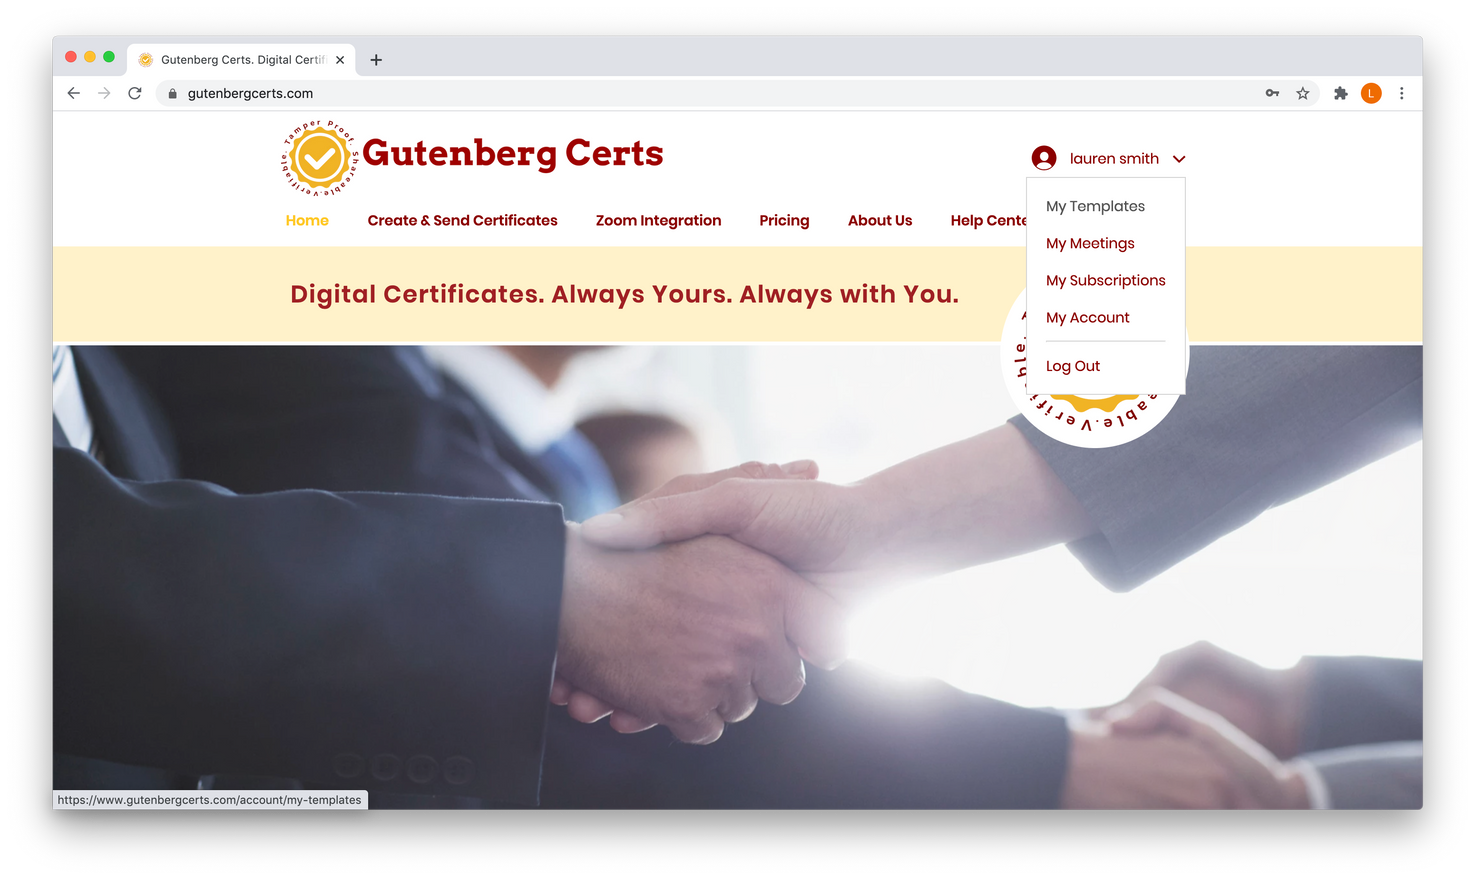 Let's create a certificate template!